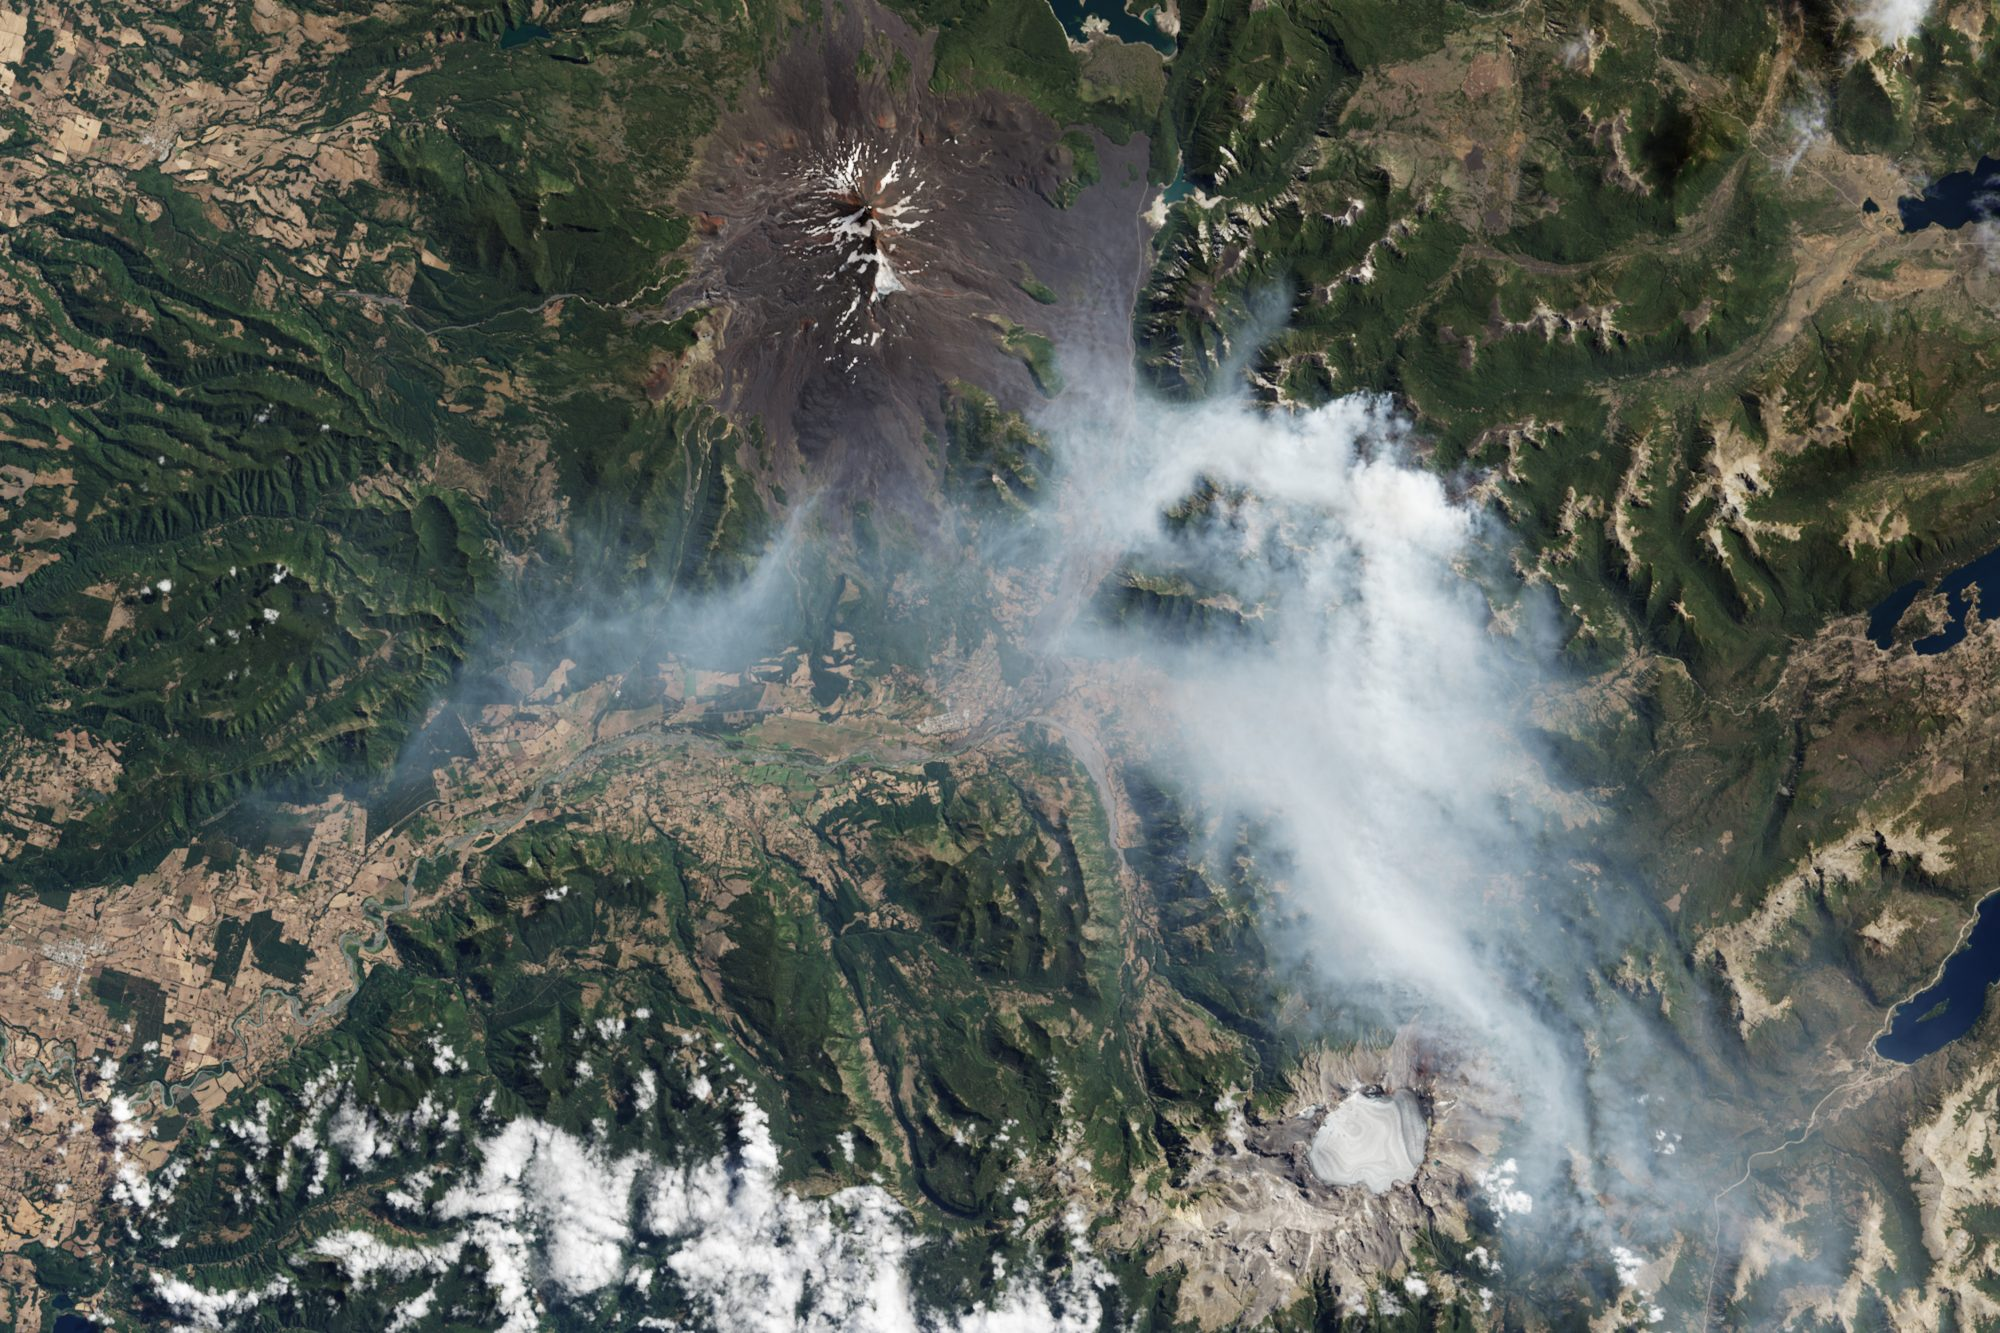 High winds and unusually warm weather are fueling damaging wildfires in southern Chile. The Operational Land Imager (OLI) on Landsat 8 acquired this image of smoke produced by a fire southeast of Llaima volcano on March 17, 2015 (Source: Jesse Allen/NASA).